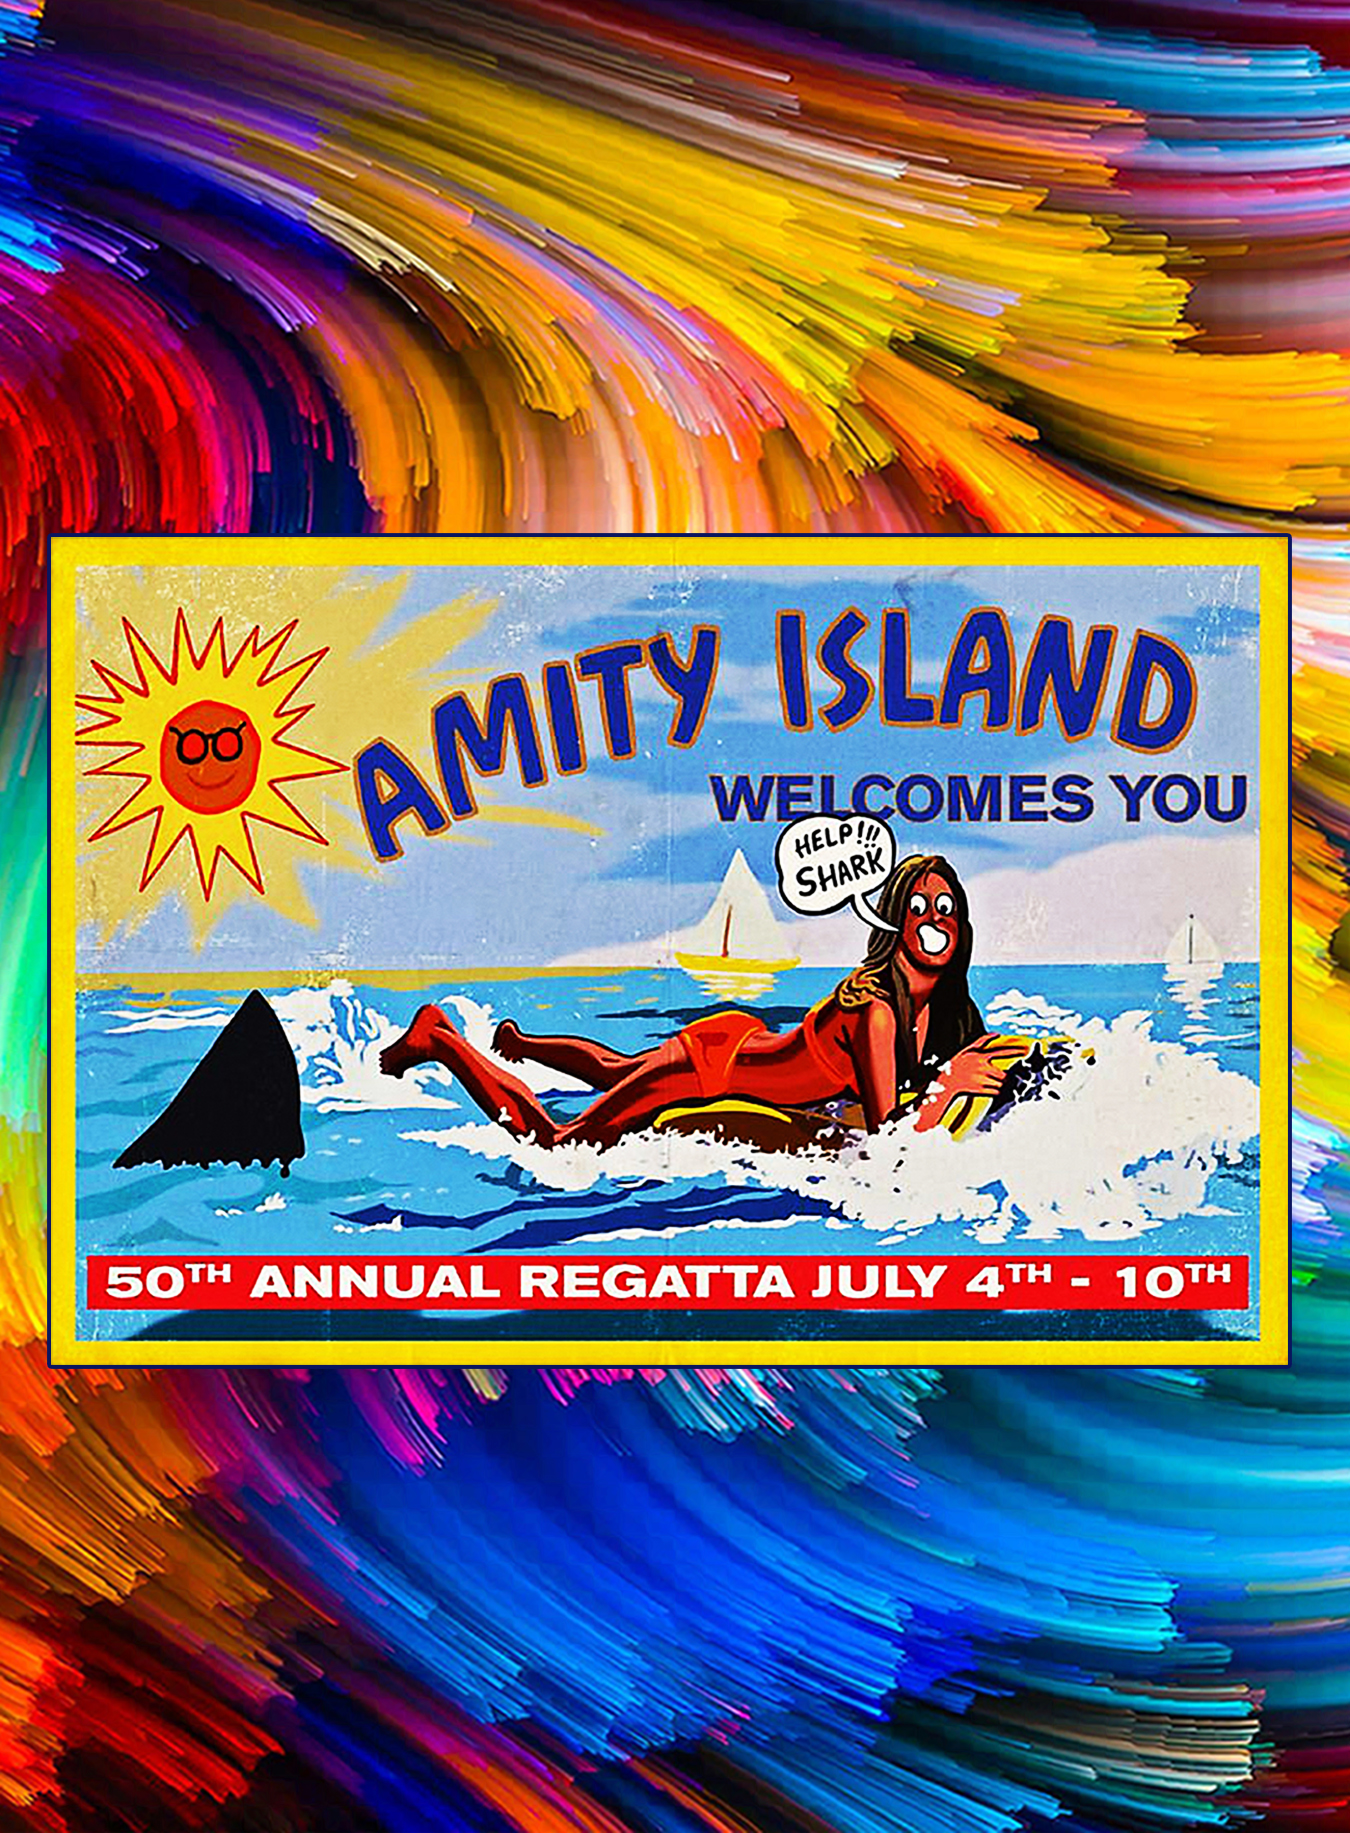 Amity island welcomes you 50th annual regatta july 4th 10th poster - A3